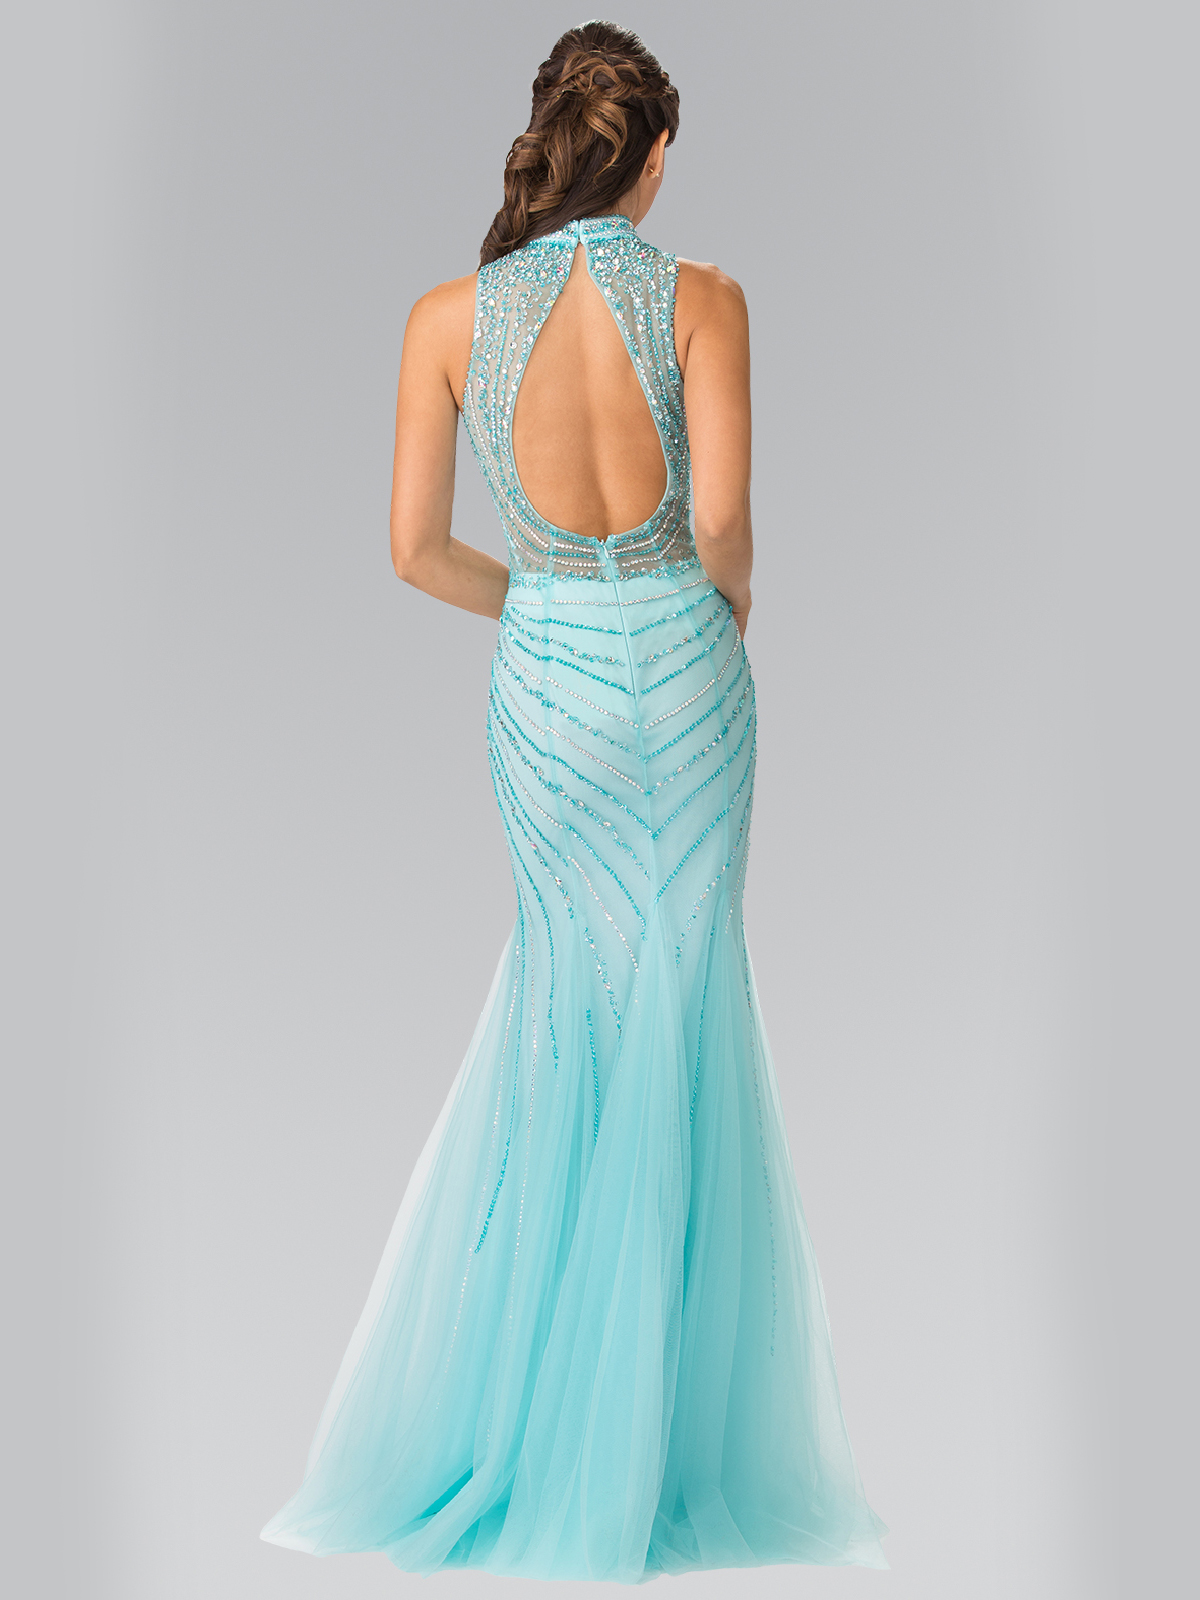 High Neck Beaded Prom Dress with Mermaid Hem | Sung Boutique L.A.